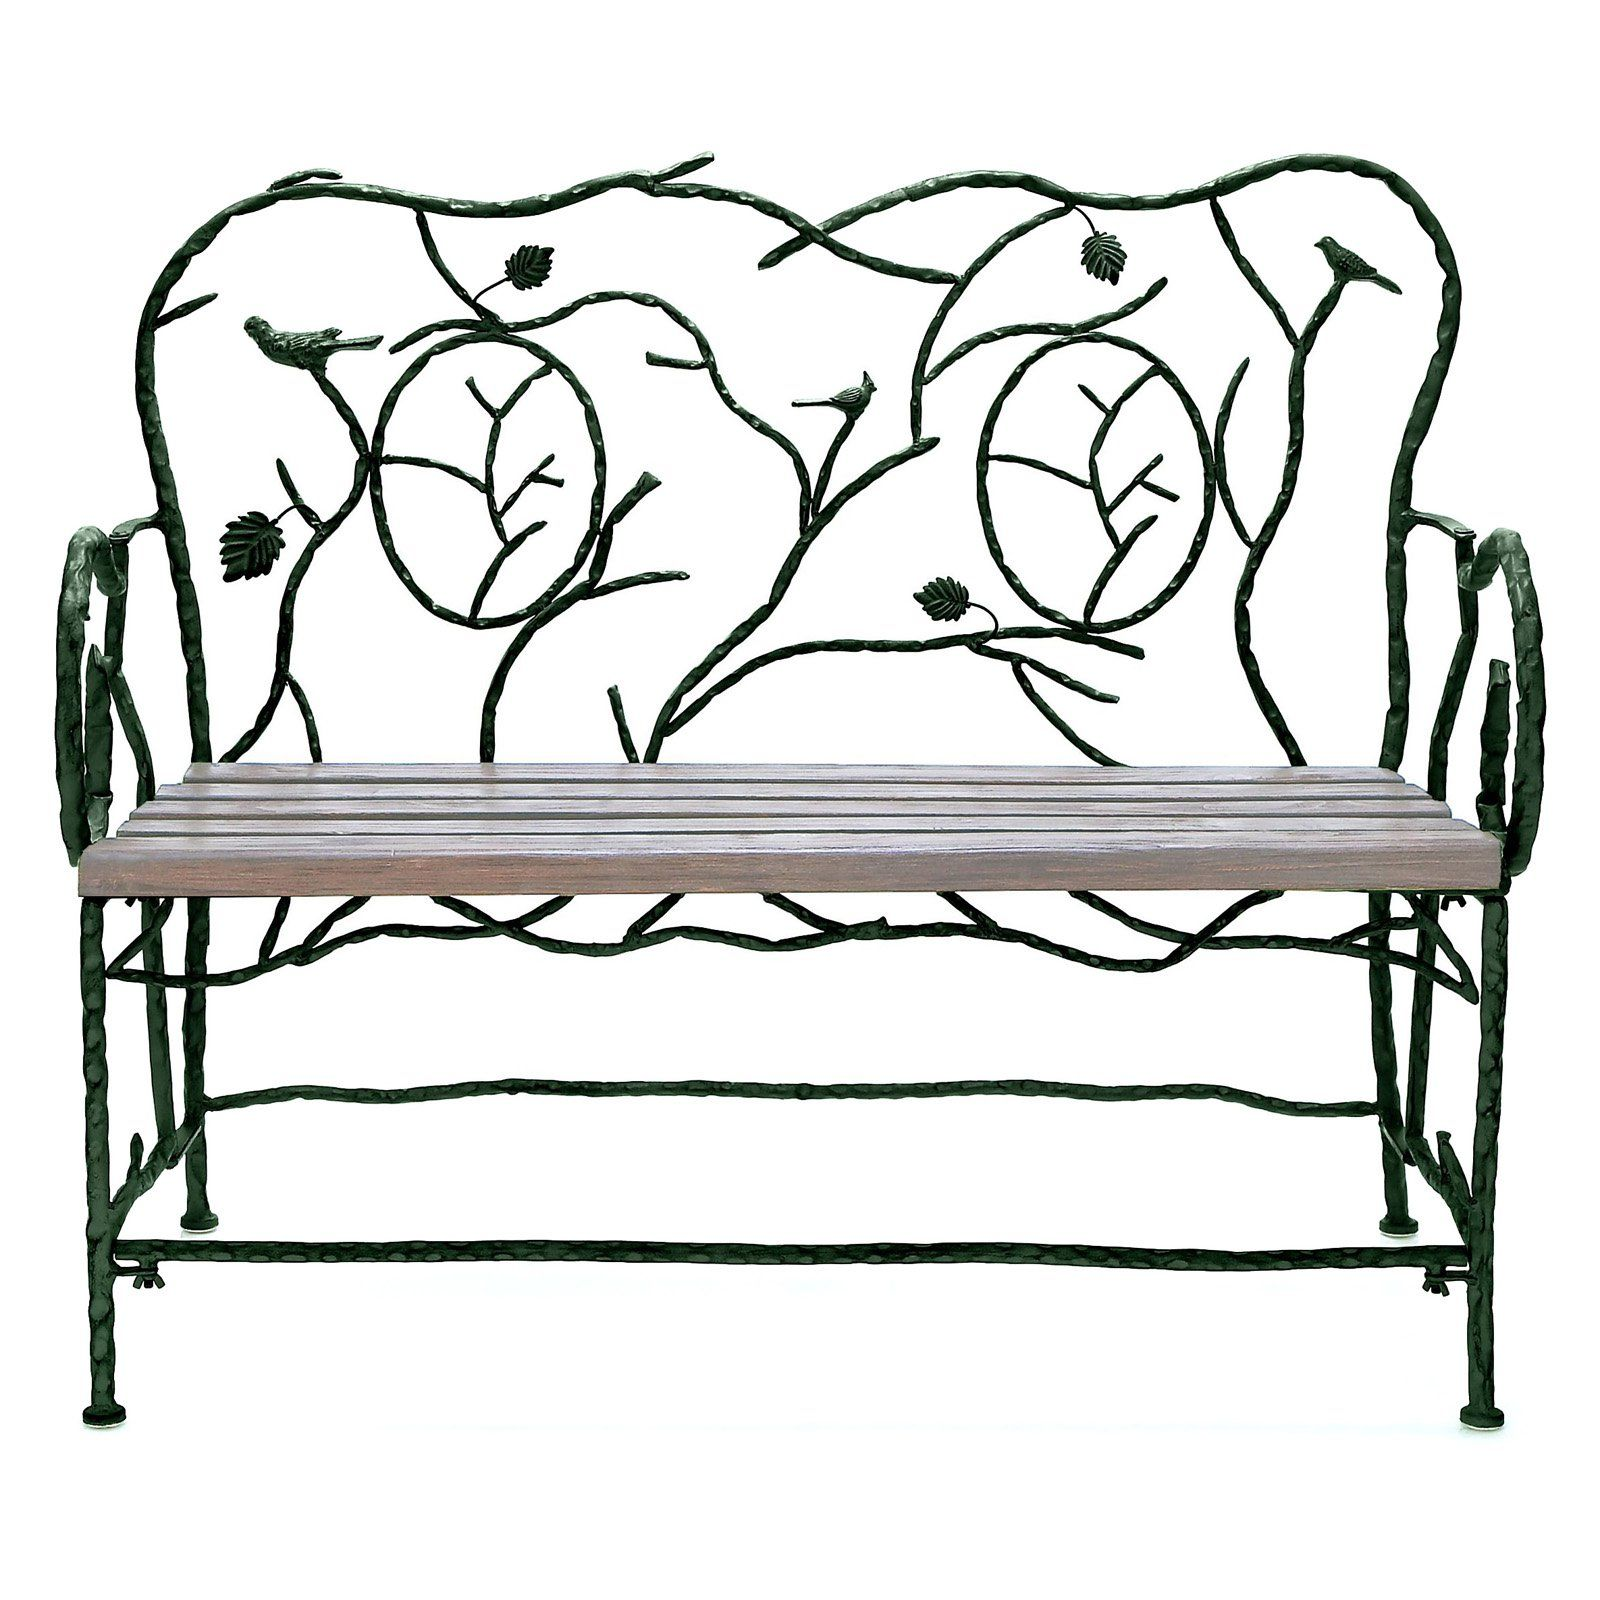 Decmode Birds And Leaves 46 In Wrought Iron Garden Bench Metal And Wood Bench Metal Bench Bench Decor